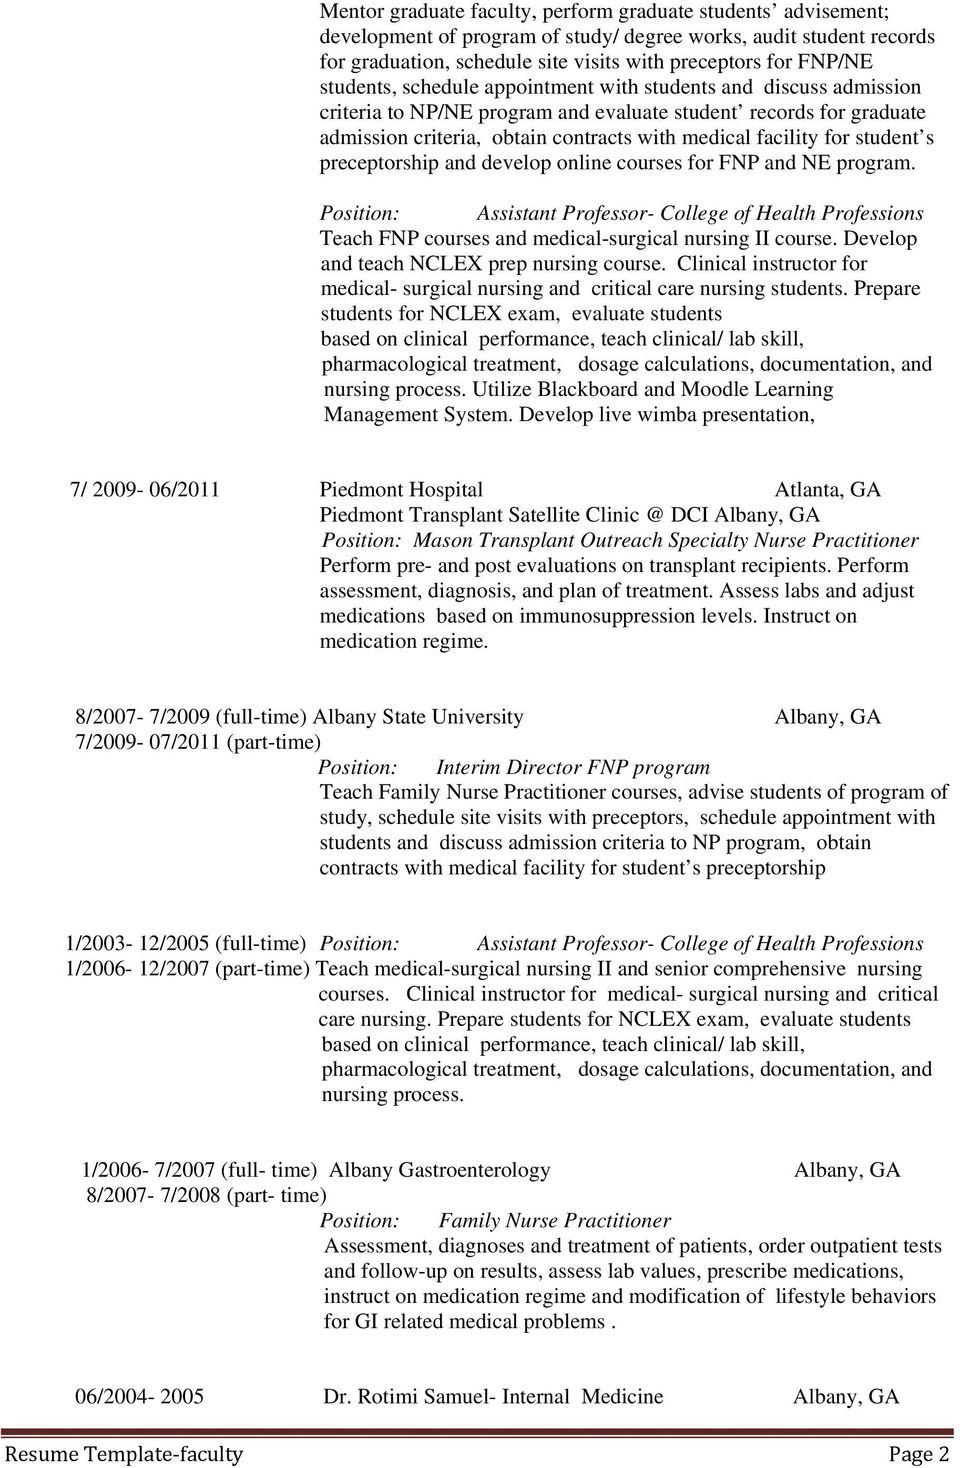 Faculty Resume Template Pdf Free Download